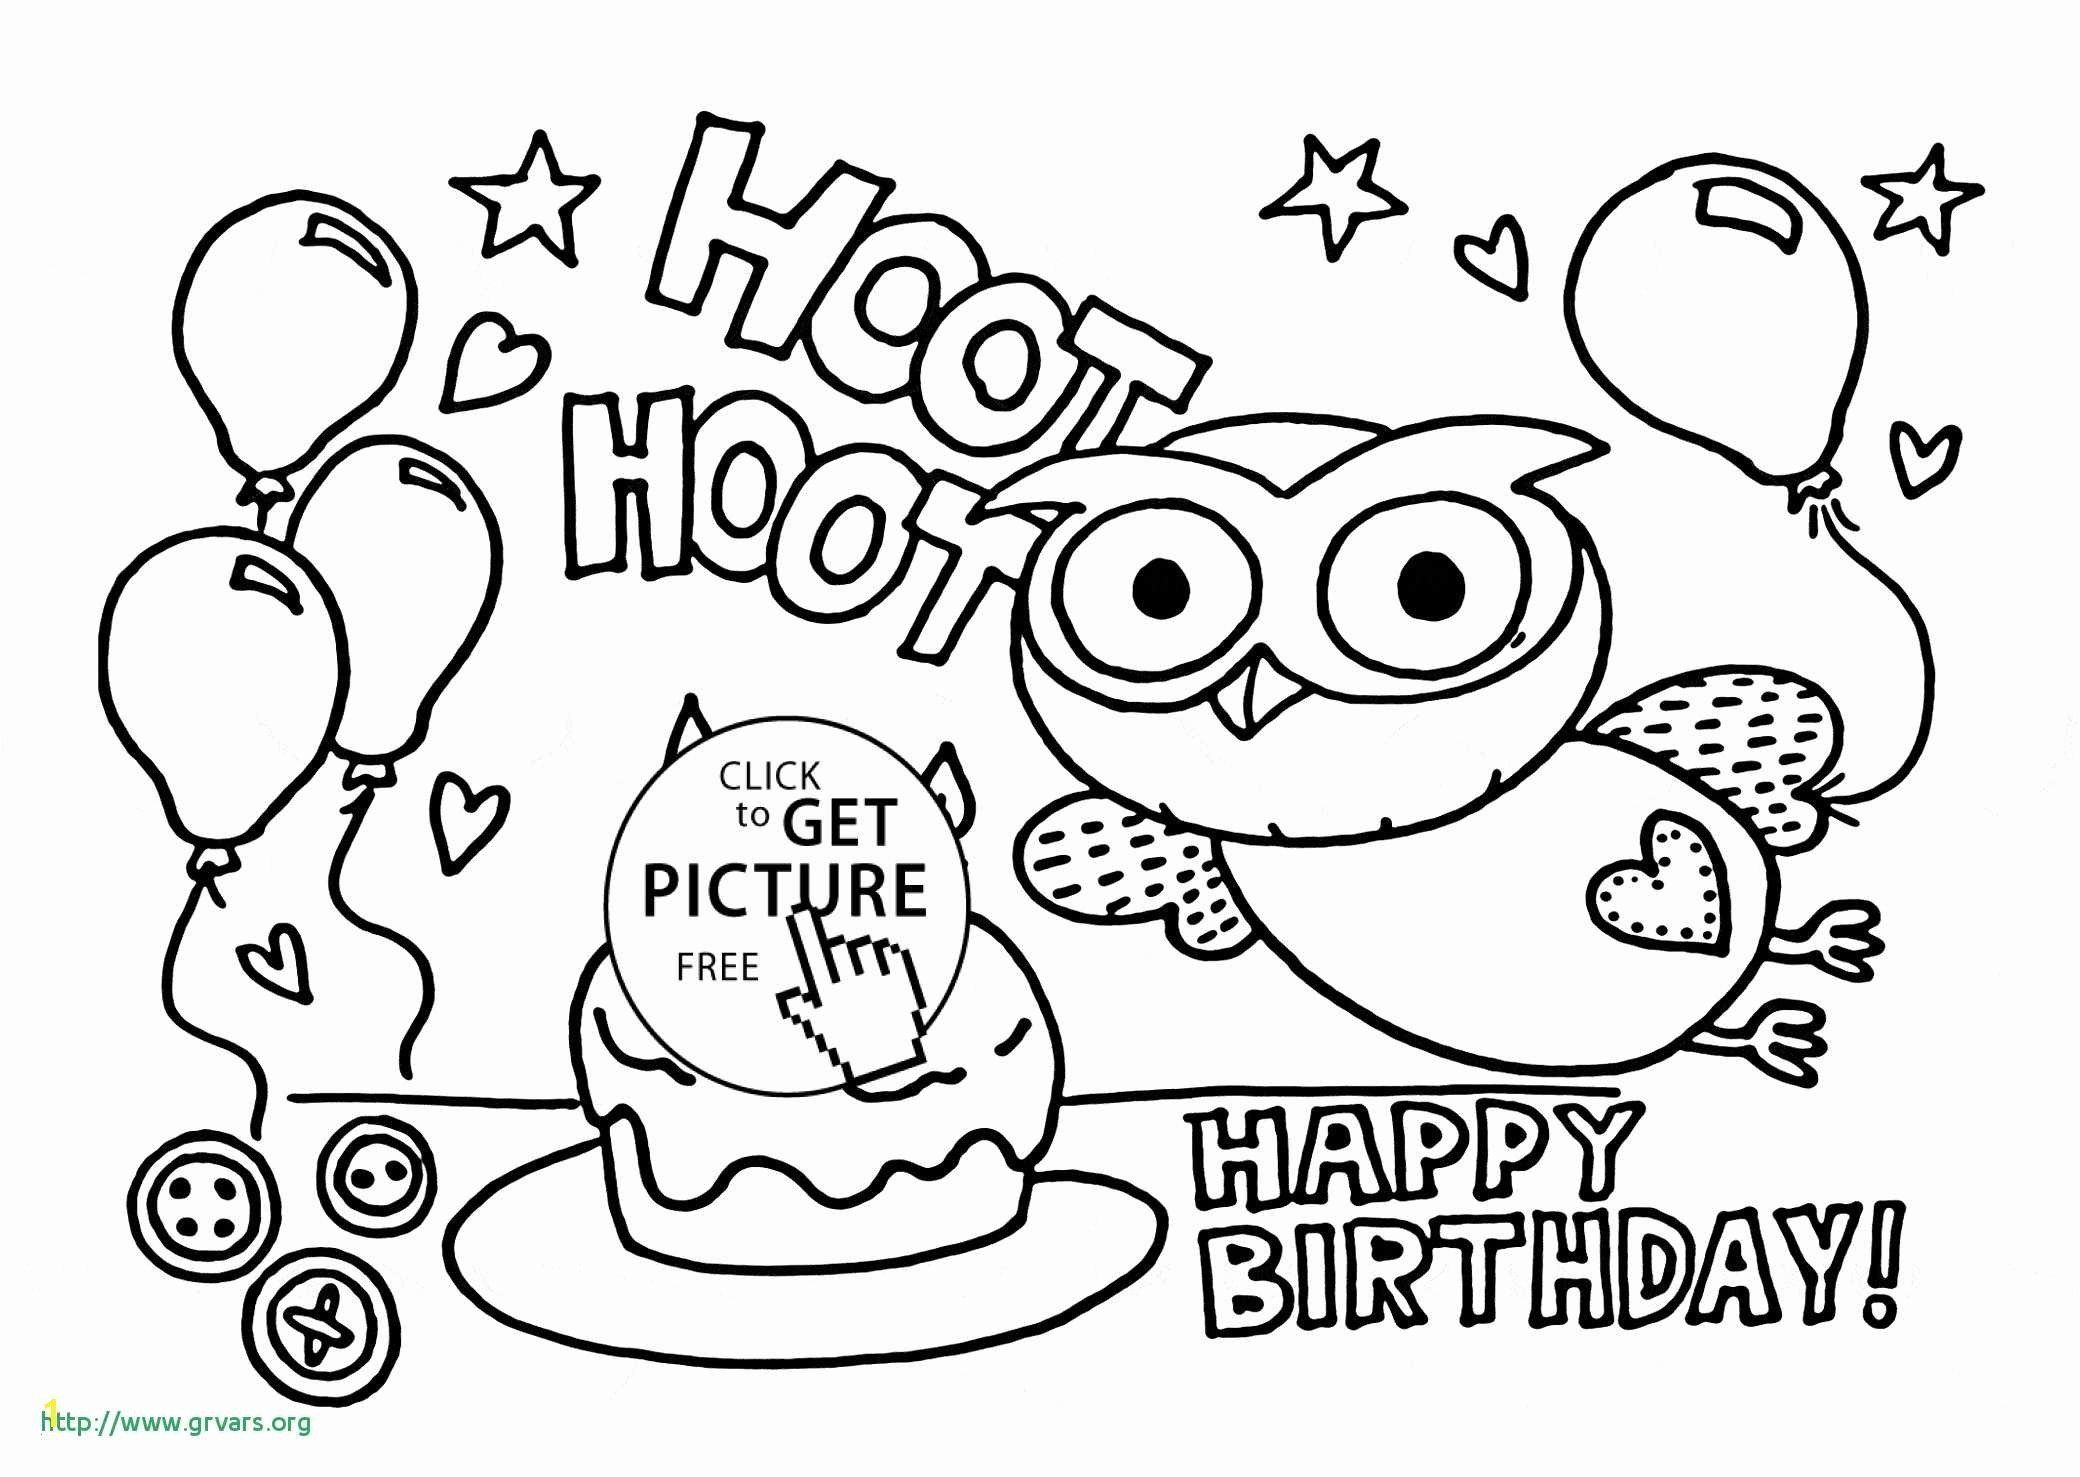 Happy Birthday Printable Sign Awesome Beautiful Birthday Cake Coloring Sheet Nocn In 2020 Happy Birthday Coloring Pages Birthday Coloring Pages Mom Coloring Pages